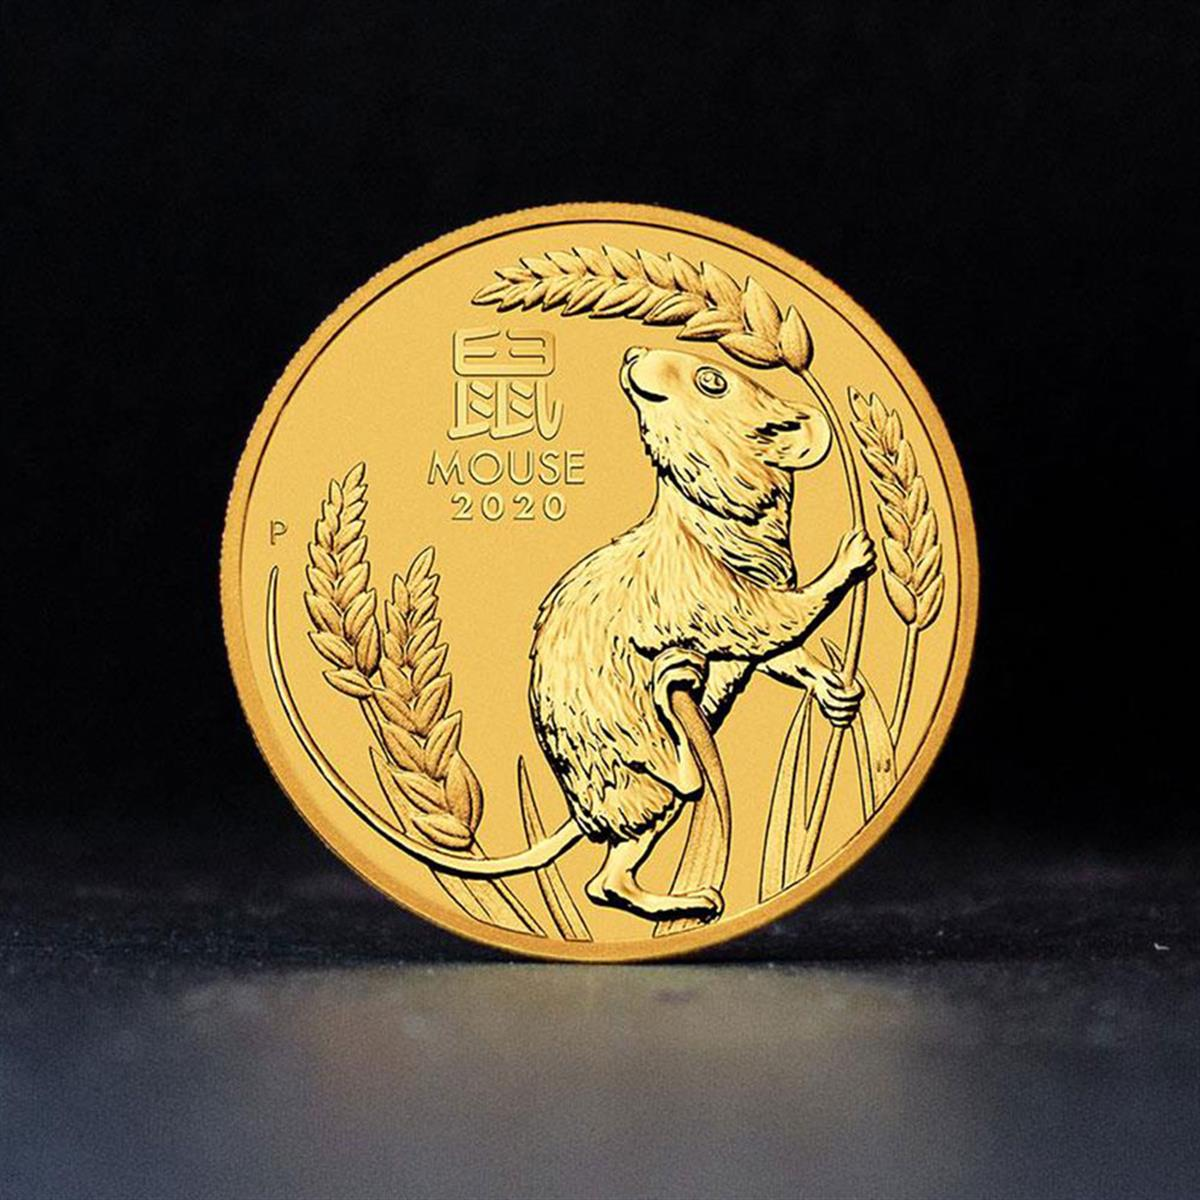 1/4oz Gold Coin 2020 Year of the Mouse - Perth Mint